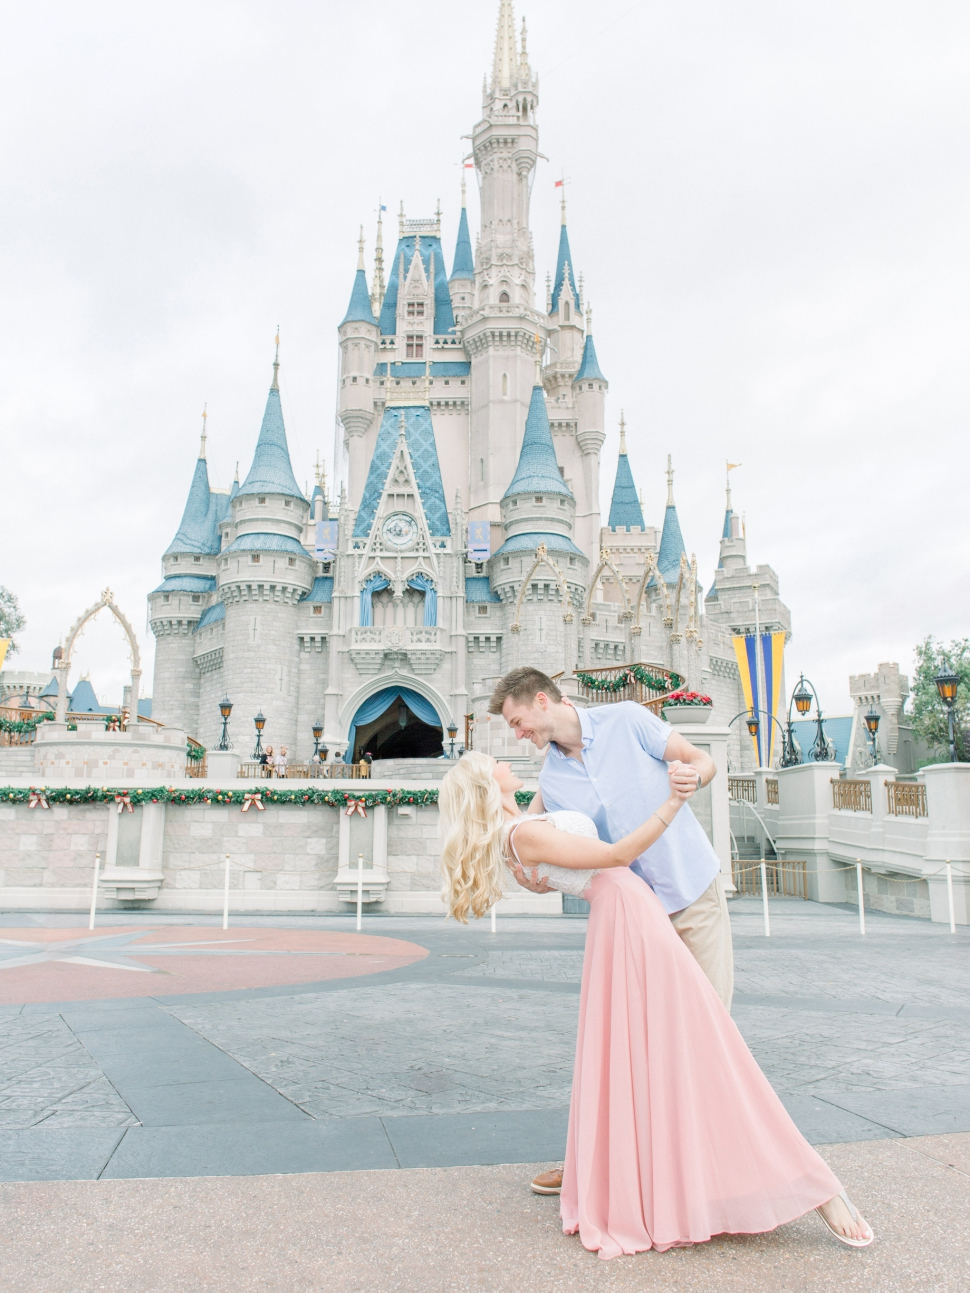 Disney-World-Engagement-Photographer-Cassi-Claire-Disney-World-Orlando-Florida_01.jpg